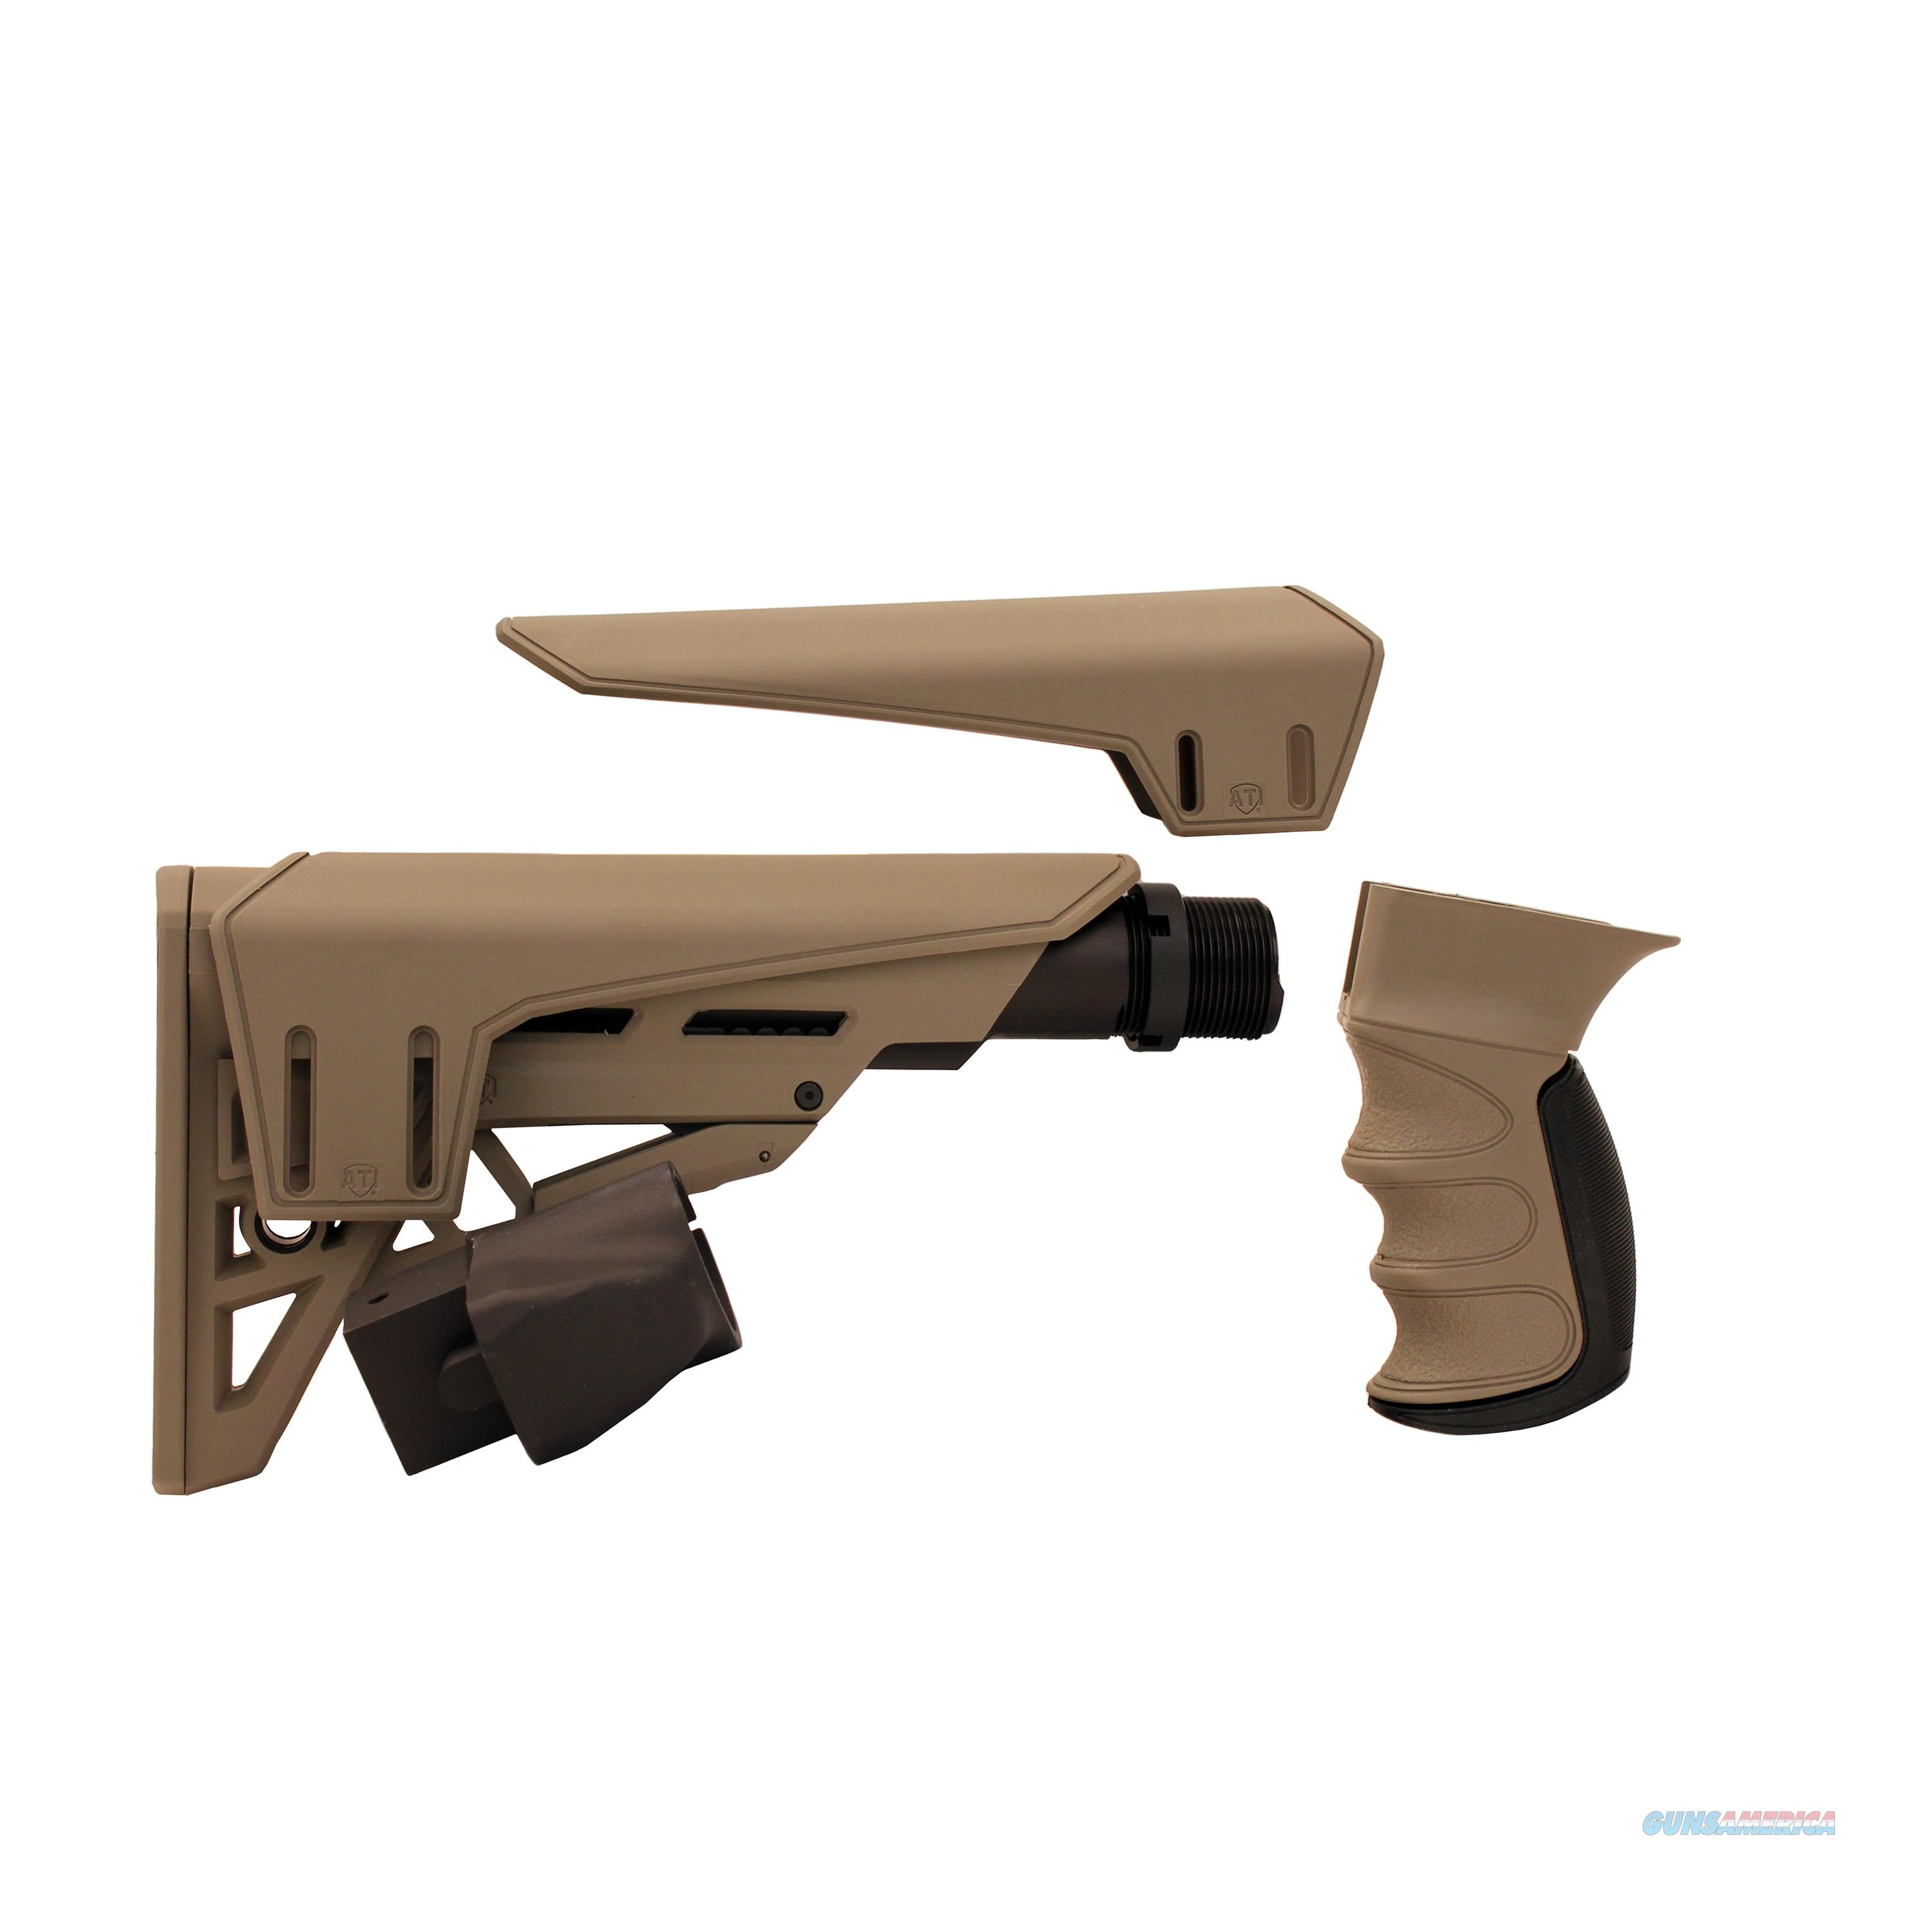 Advanced Technology Saiga Tactlite Elite Six Position Adjustable Stock B2201272  Non-Guns > Gunstocks, Grips & Wood